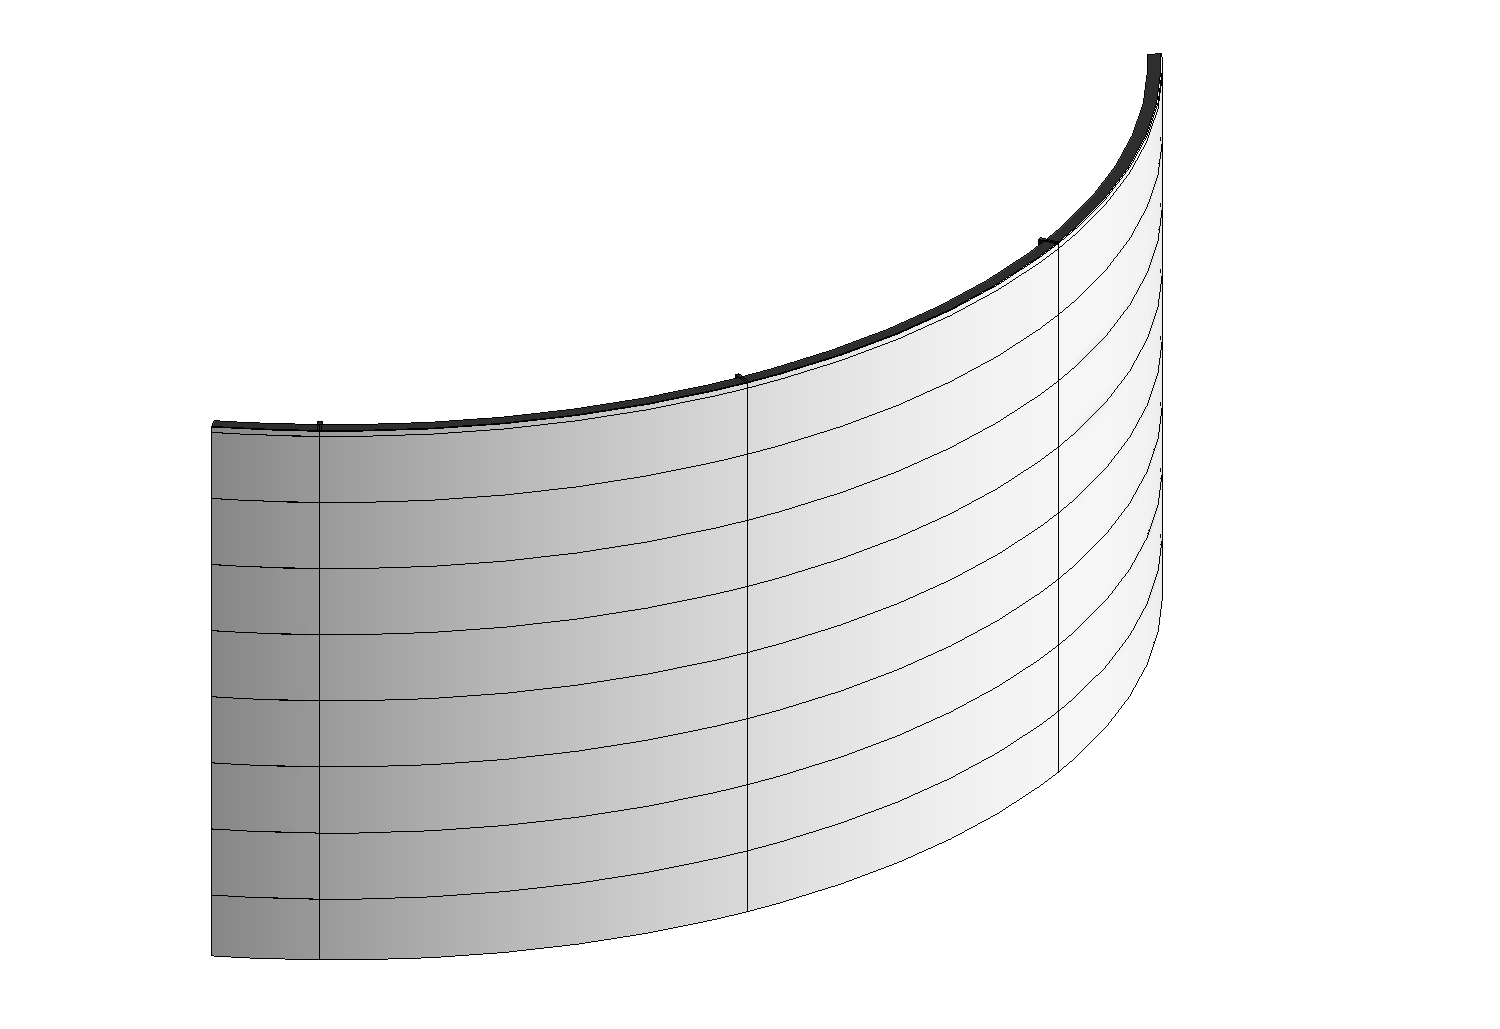 Curtain wall png. Modelling a truly curved